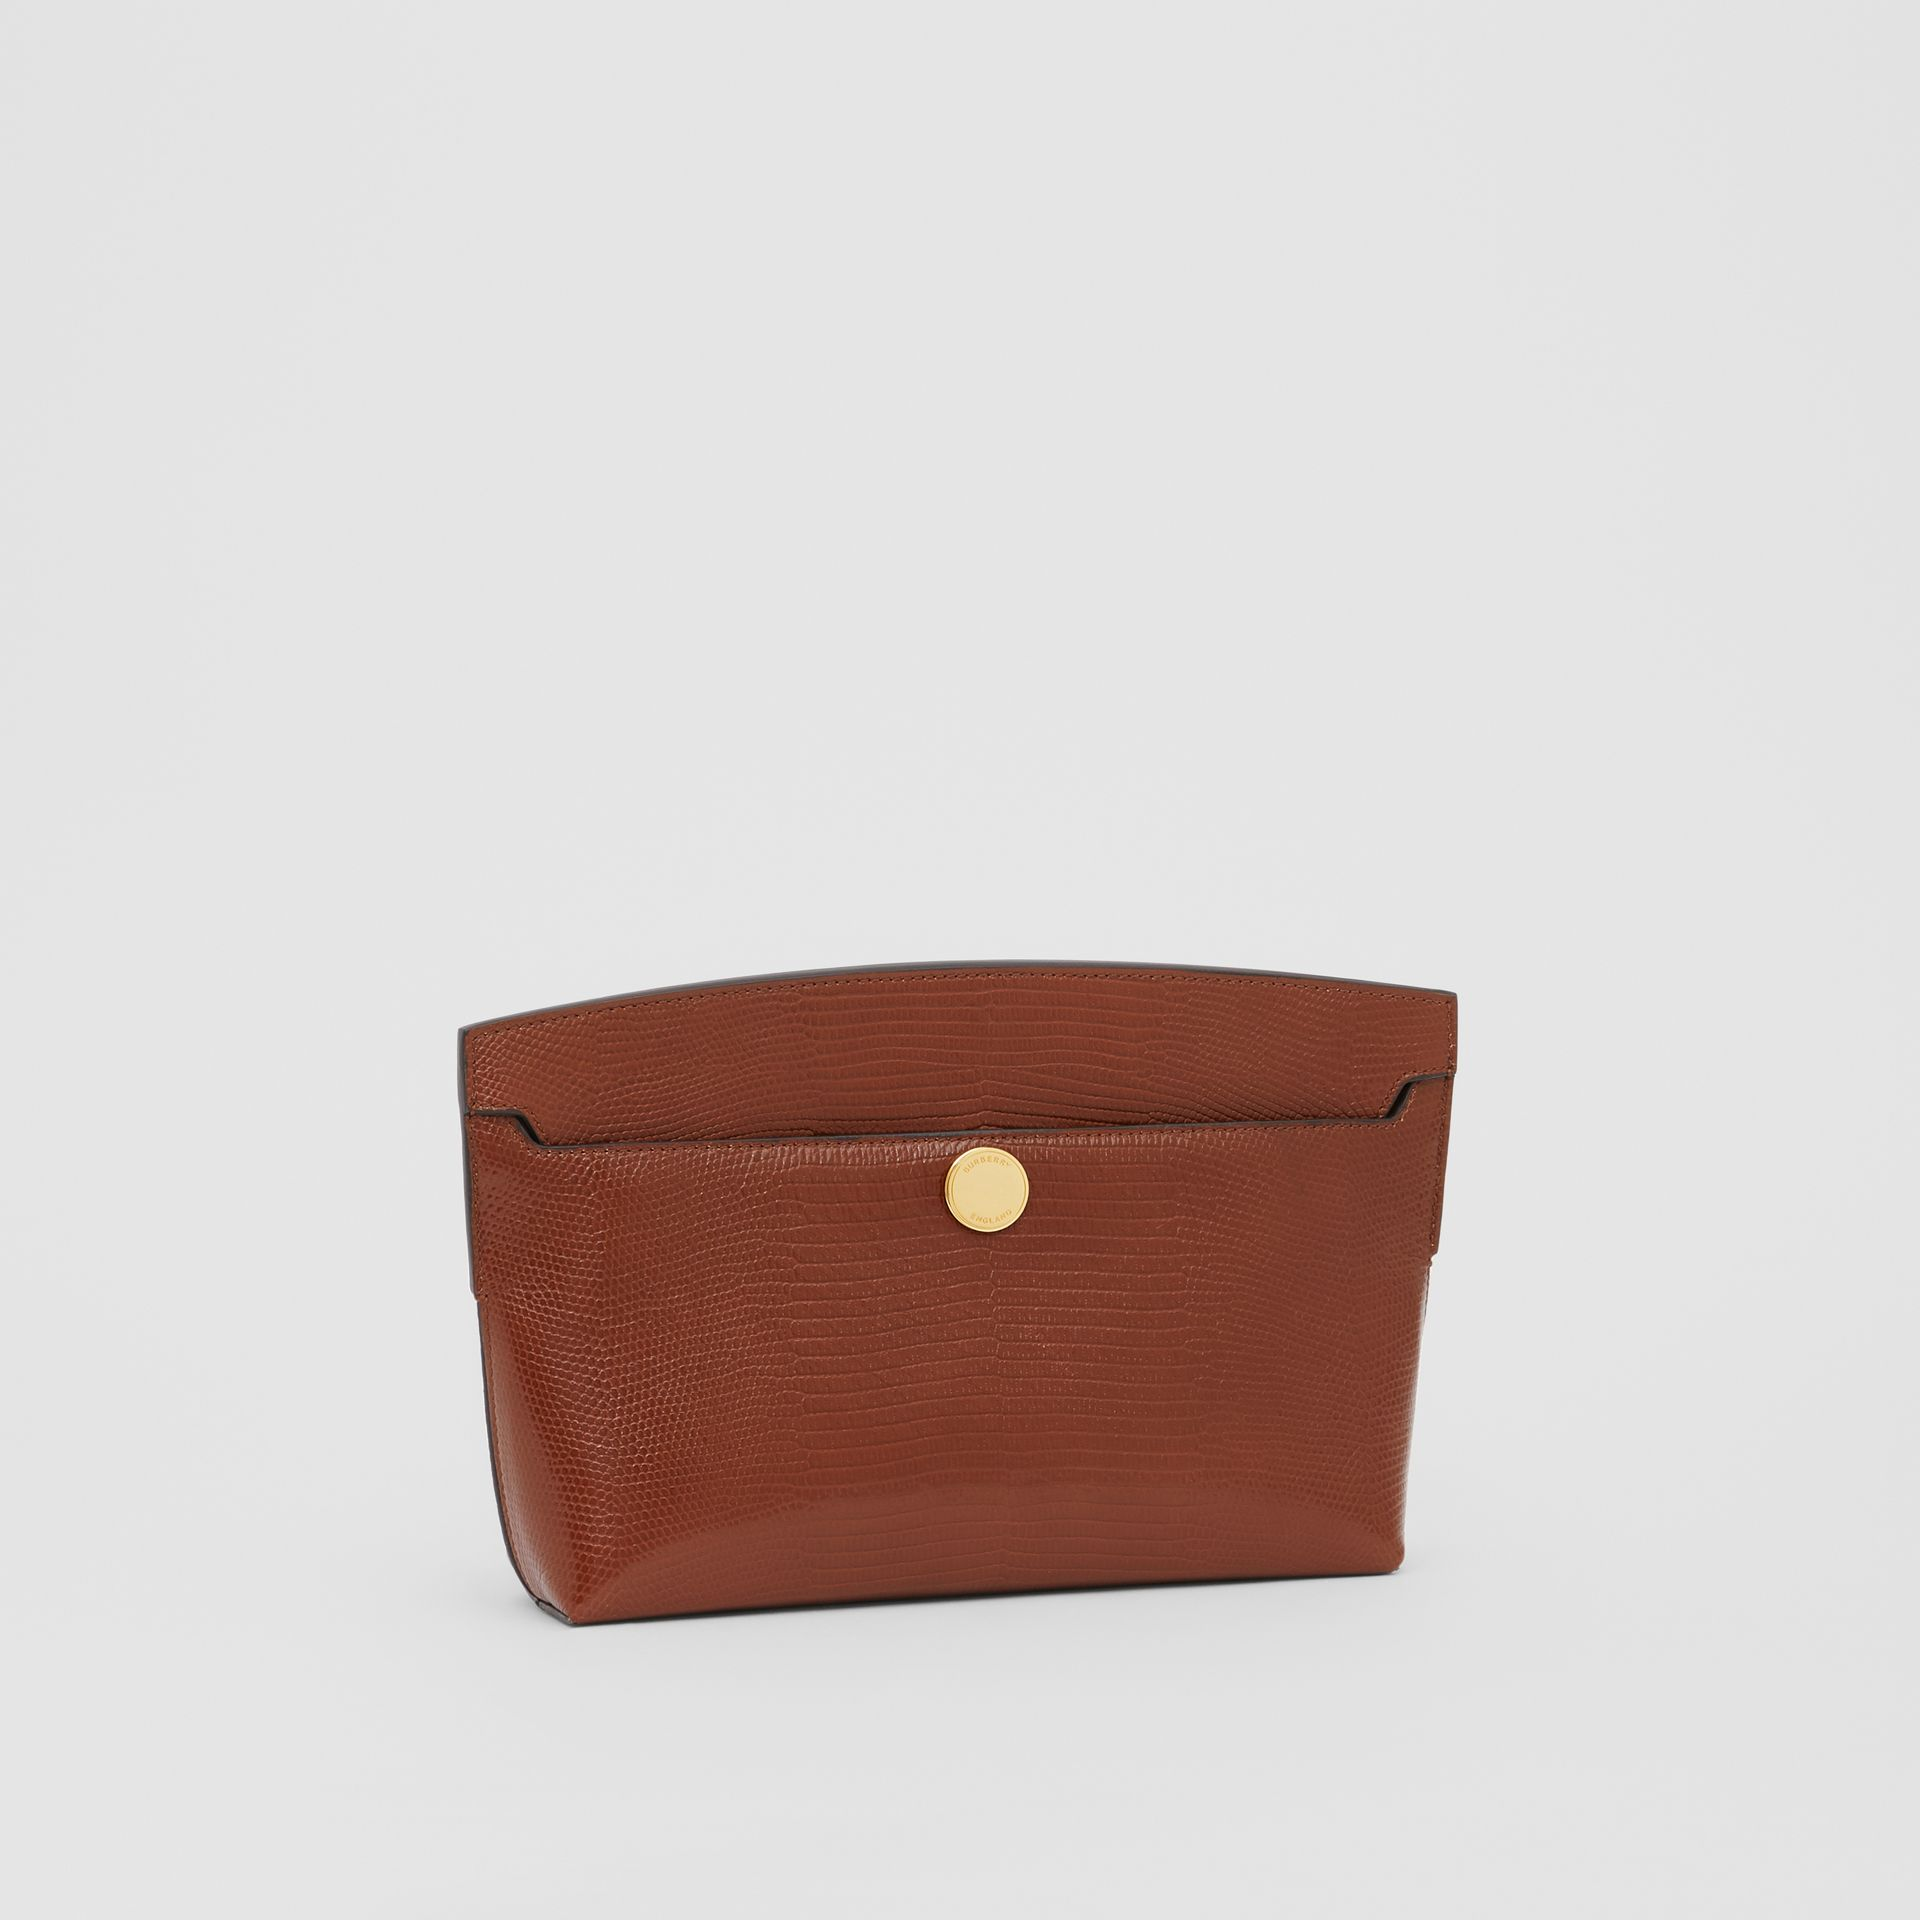 Embossed Deerskin Society Clutch in Tan - Women | Burberry - gallery image 4